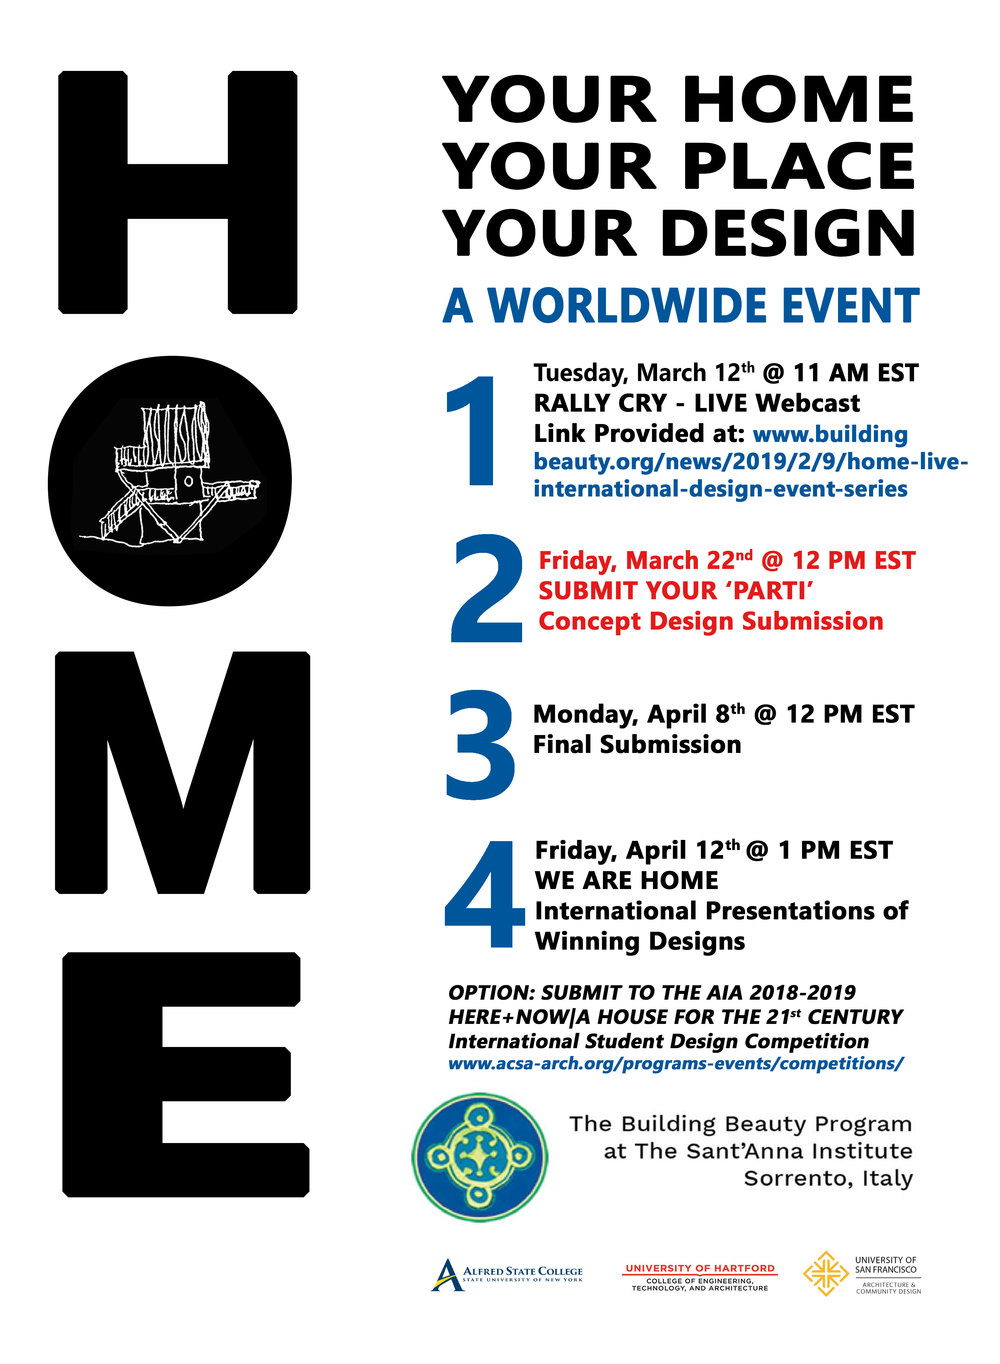 HOME_POSTER_031119 updated 14 March.jpg